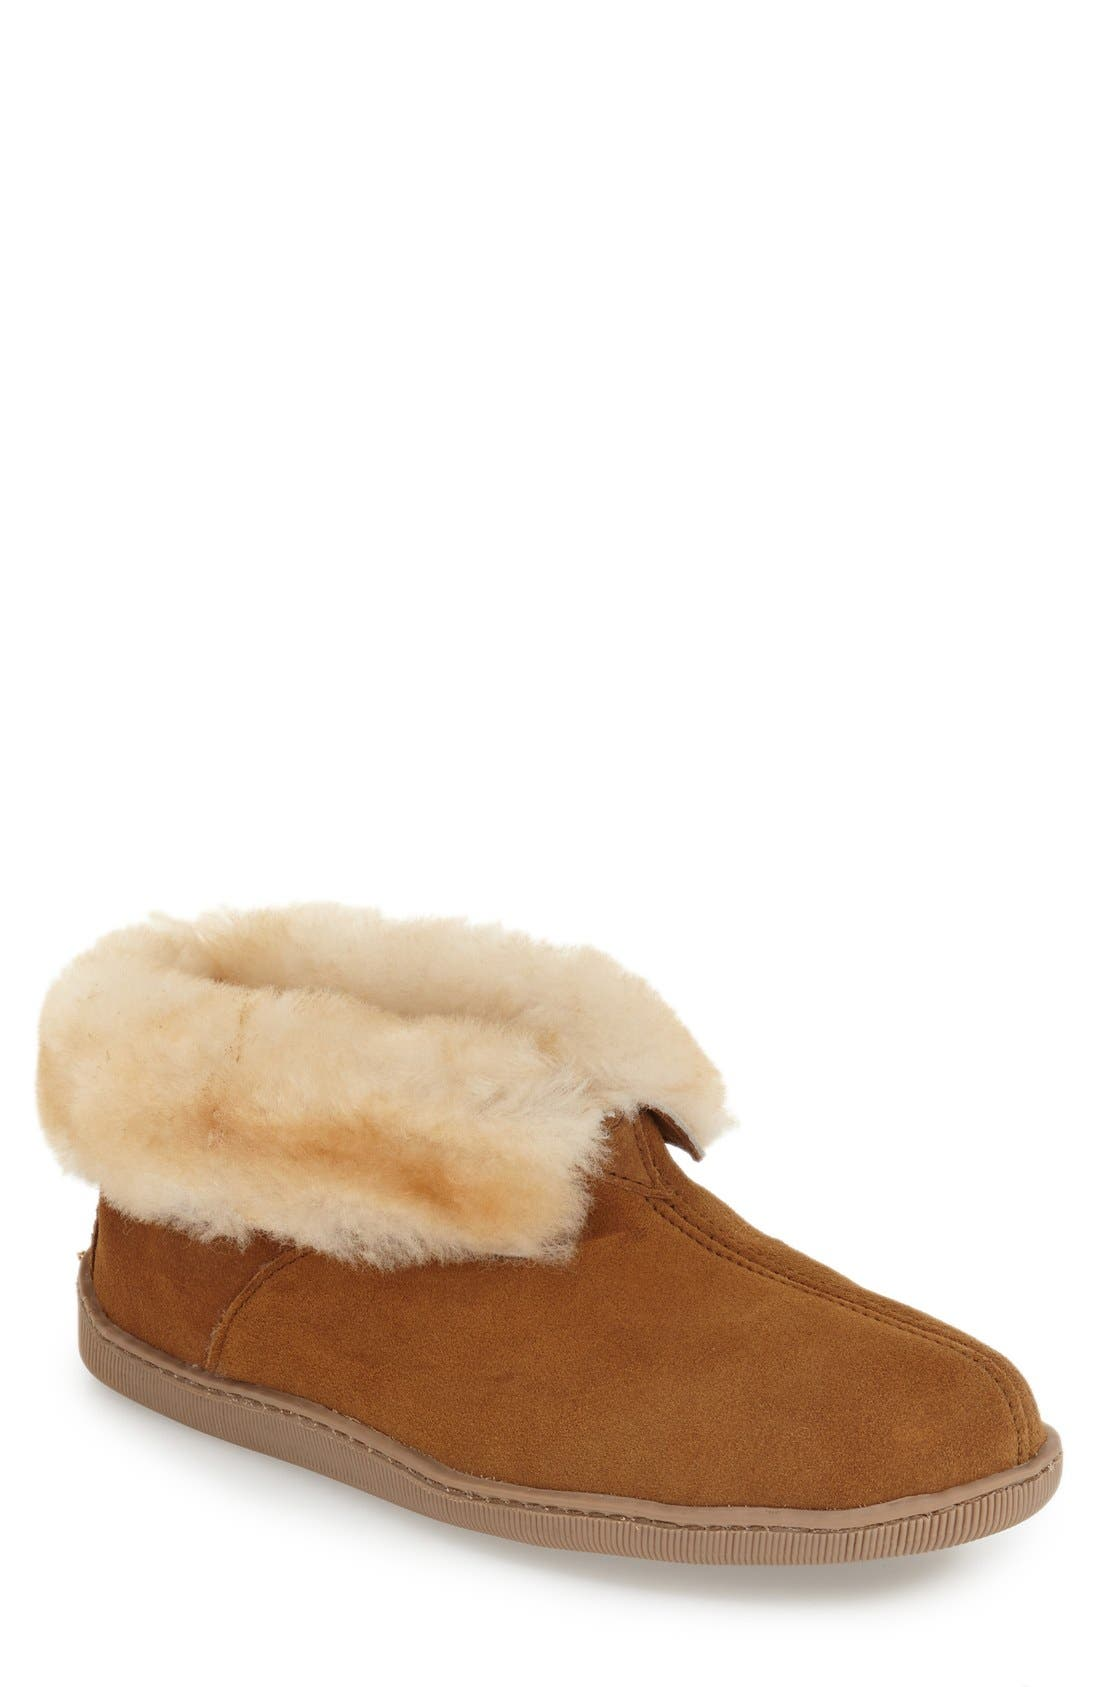 Alternate Image 1 Selected - Minnetonka Genuine Shearling Lined Ankle Boot (Men)